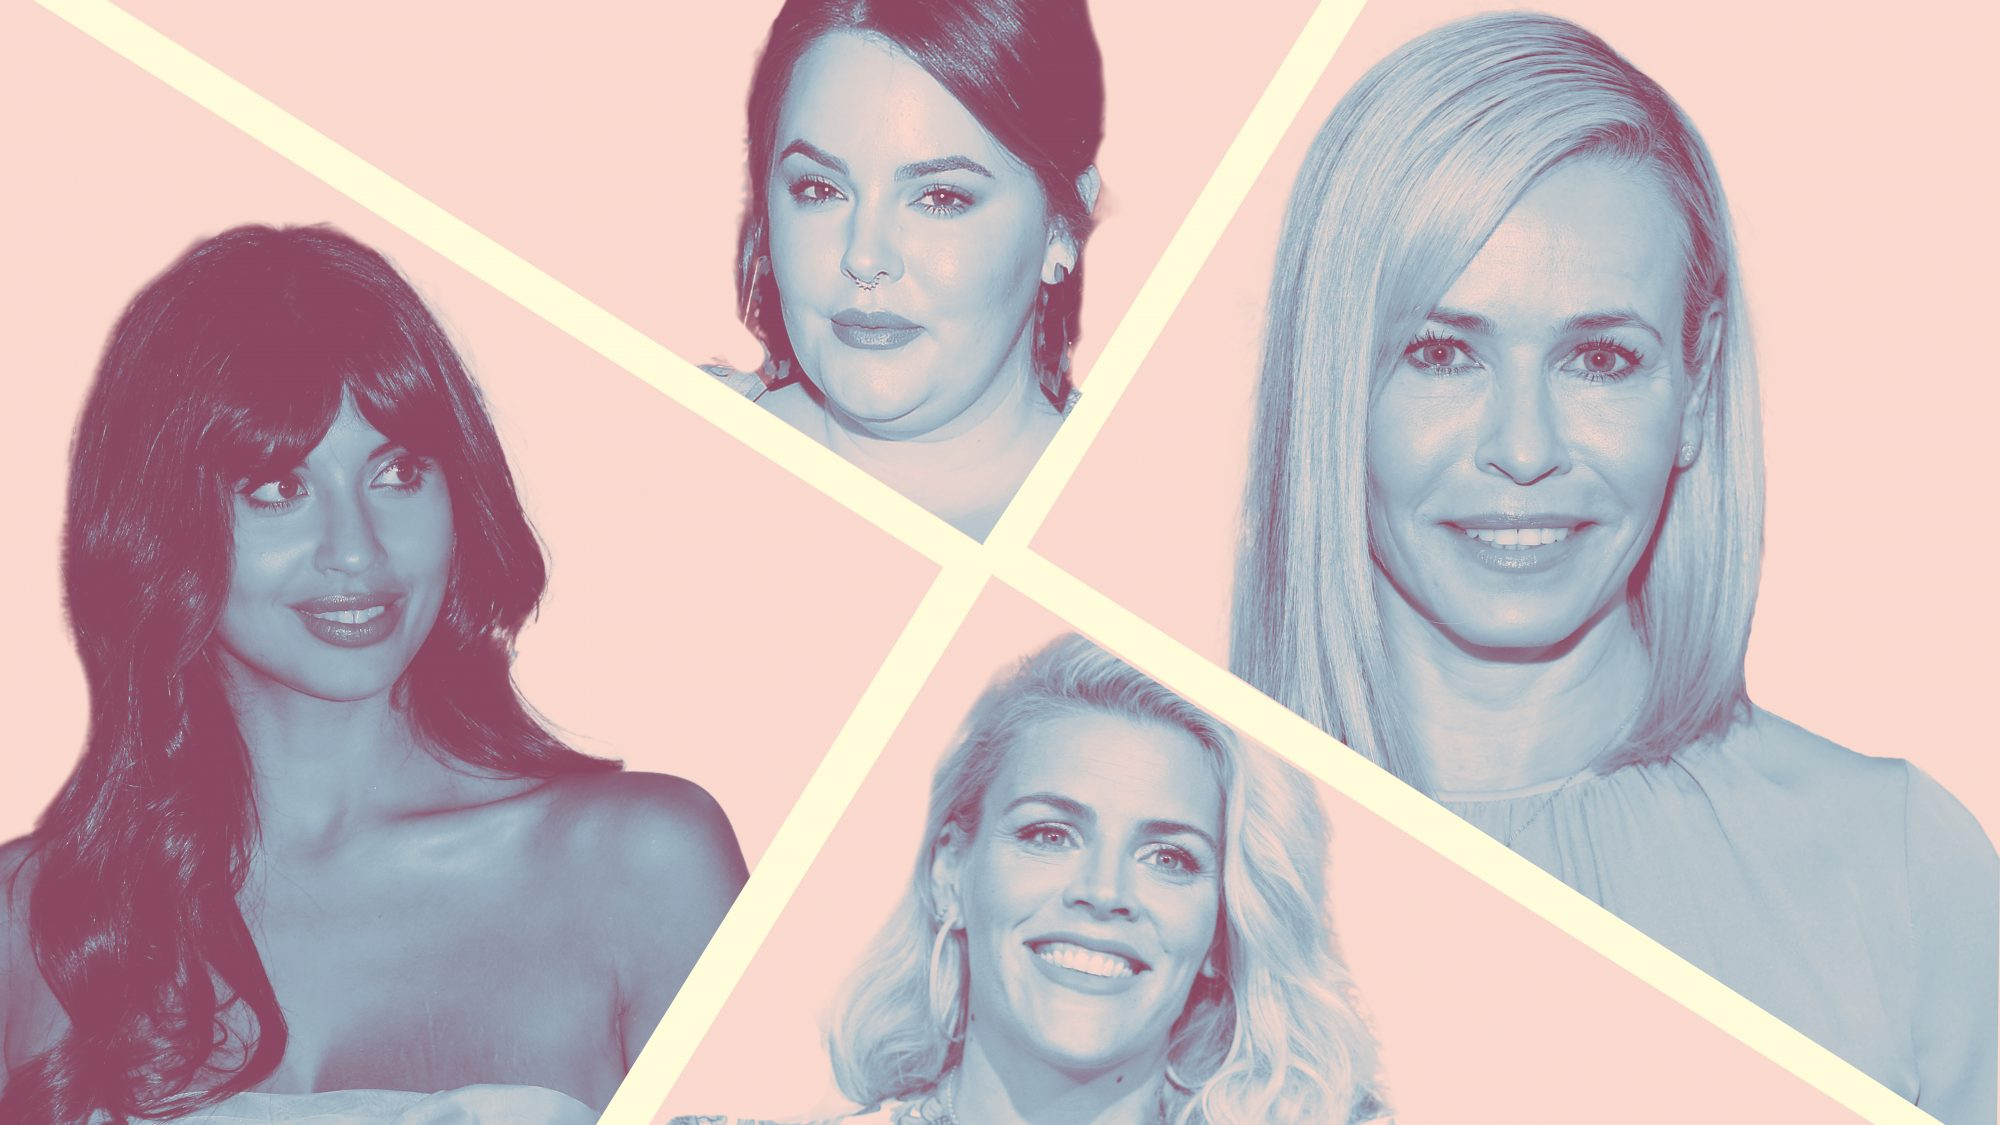 celebrities abortion abortion-ban woman health reproduction reproductive-rights motherhood